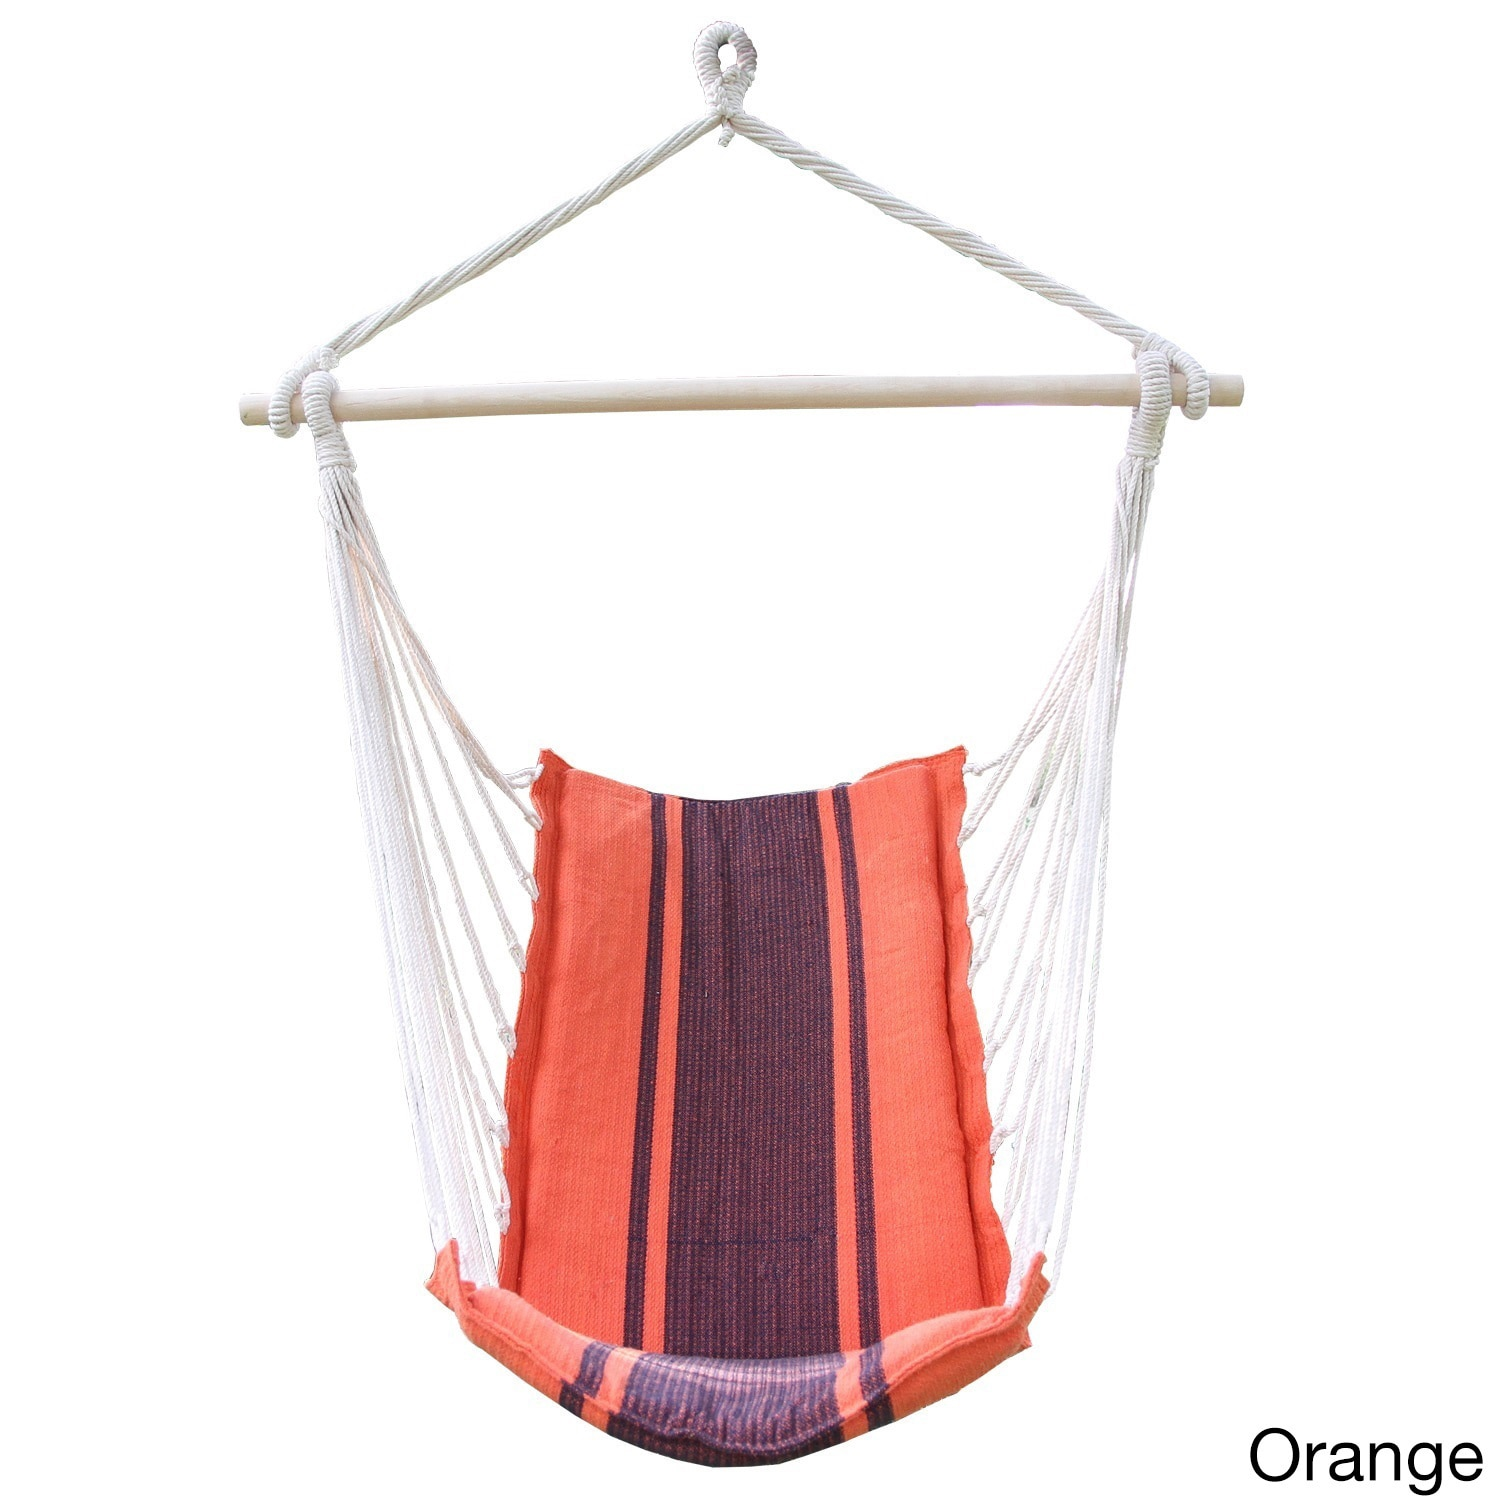 Orange Porch Swings at Overstock